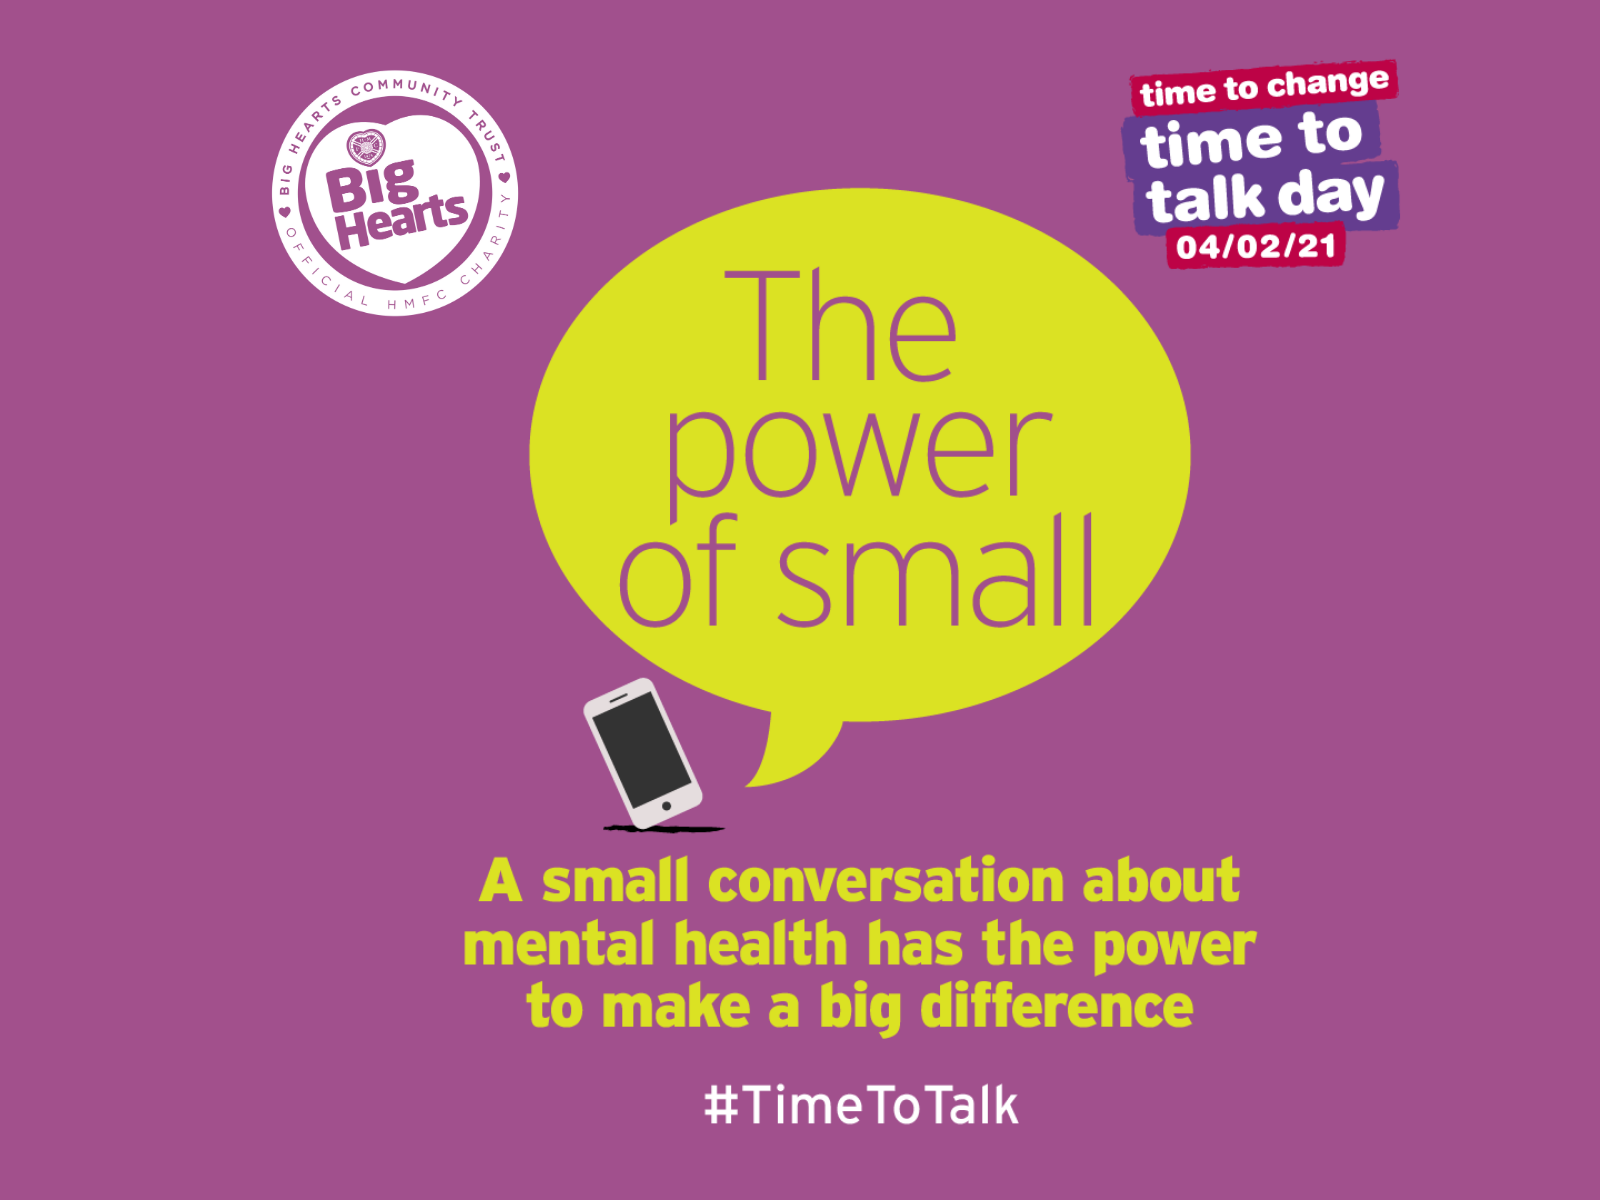 » Time to talk day: the power of small